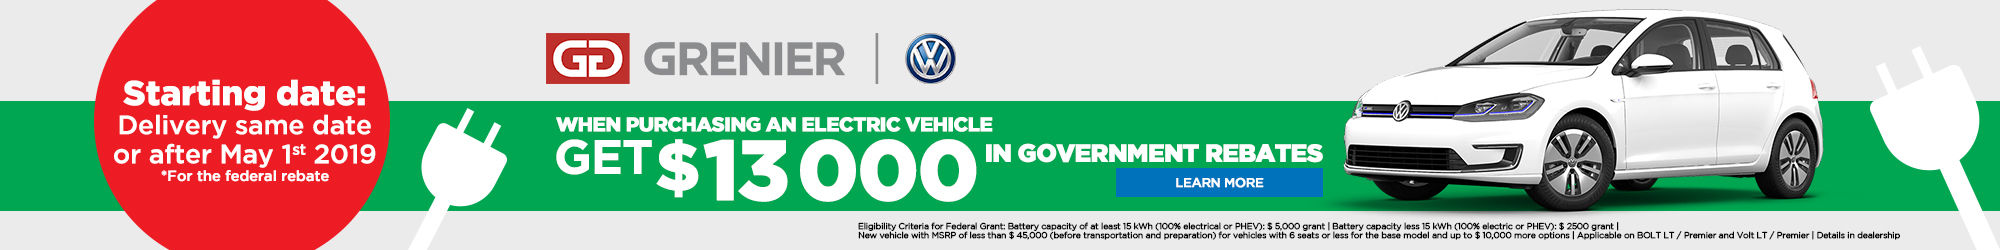 Government rebate for electric vehicles